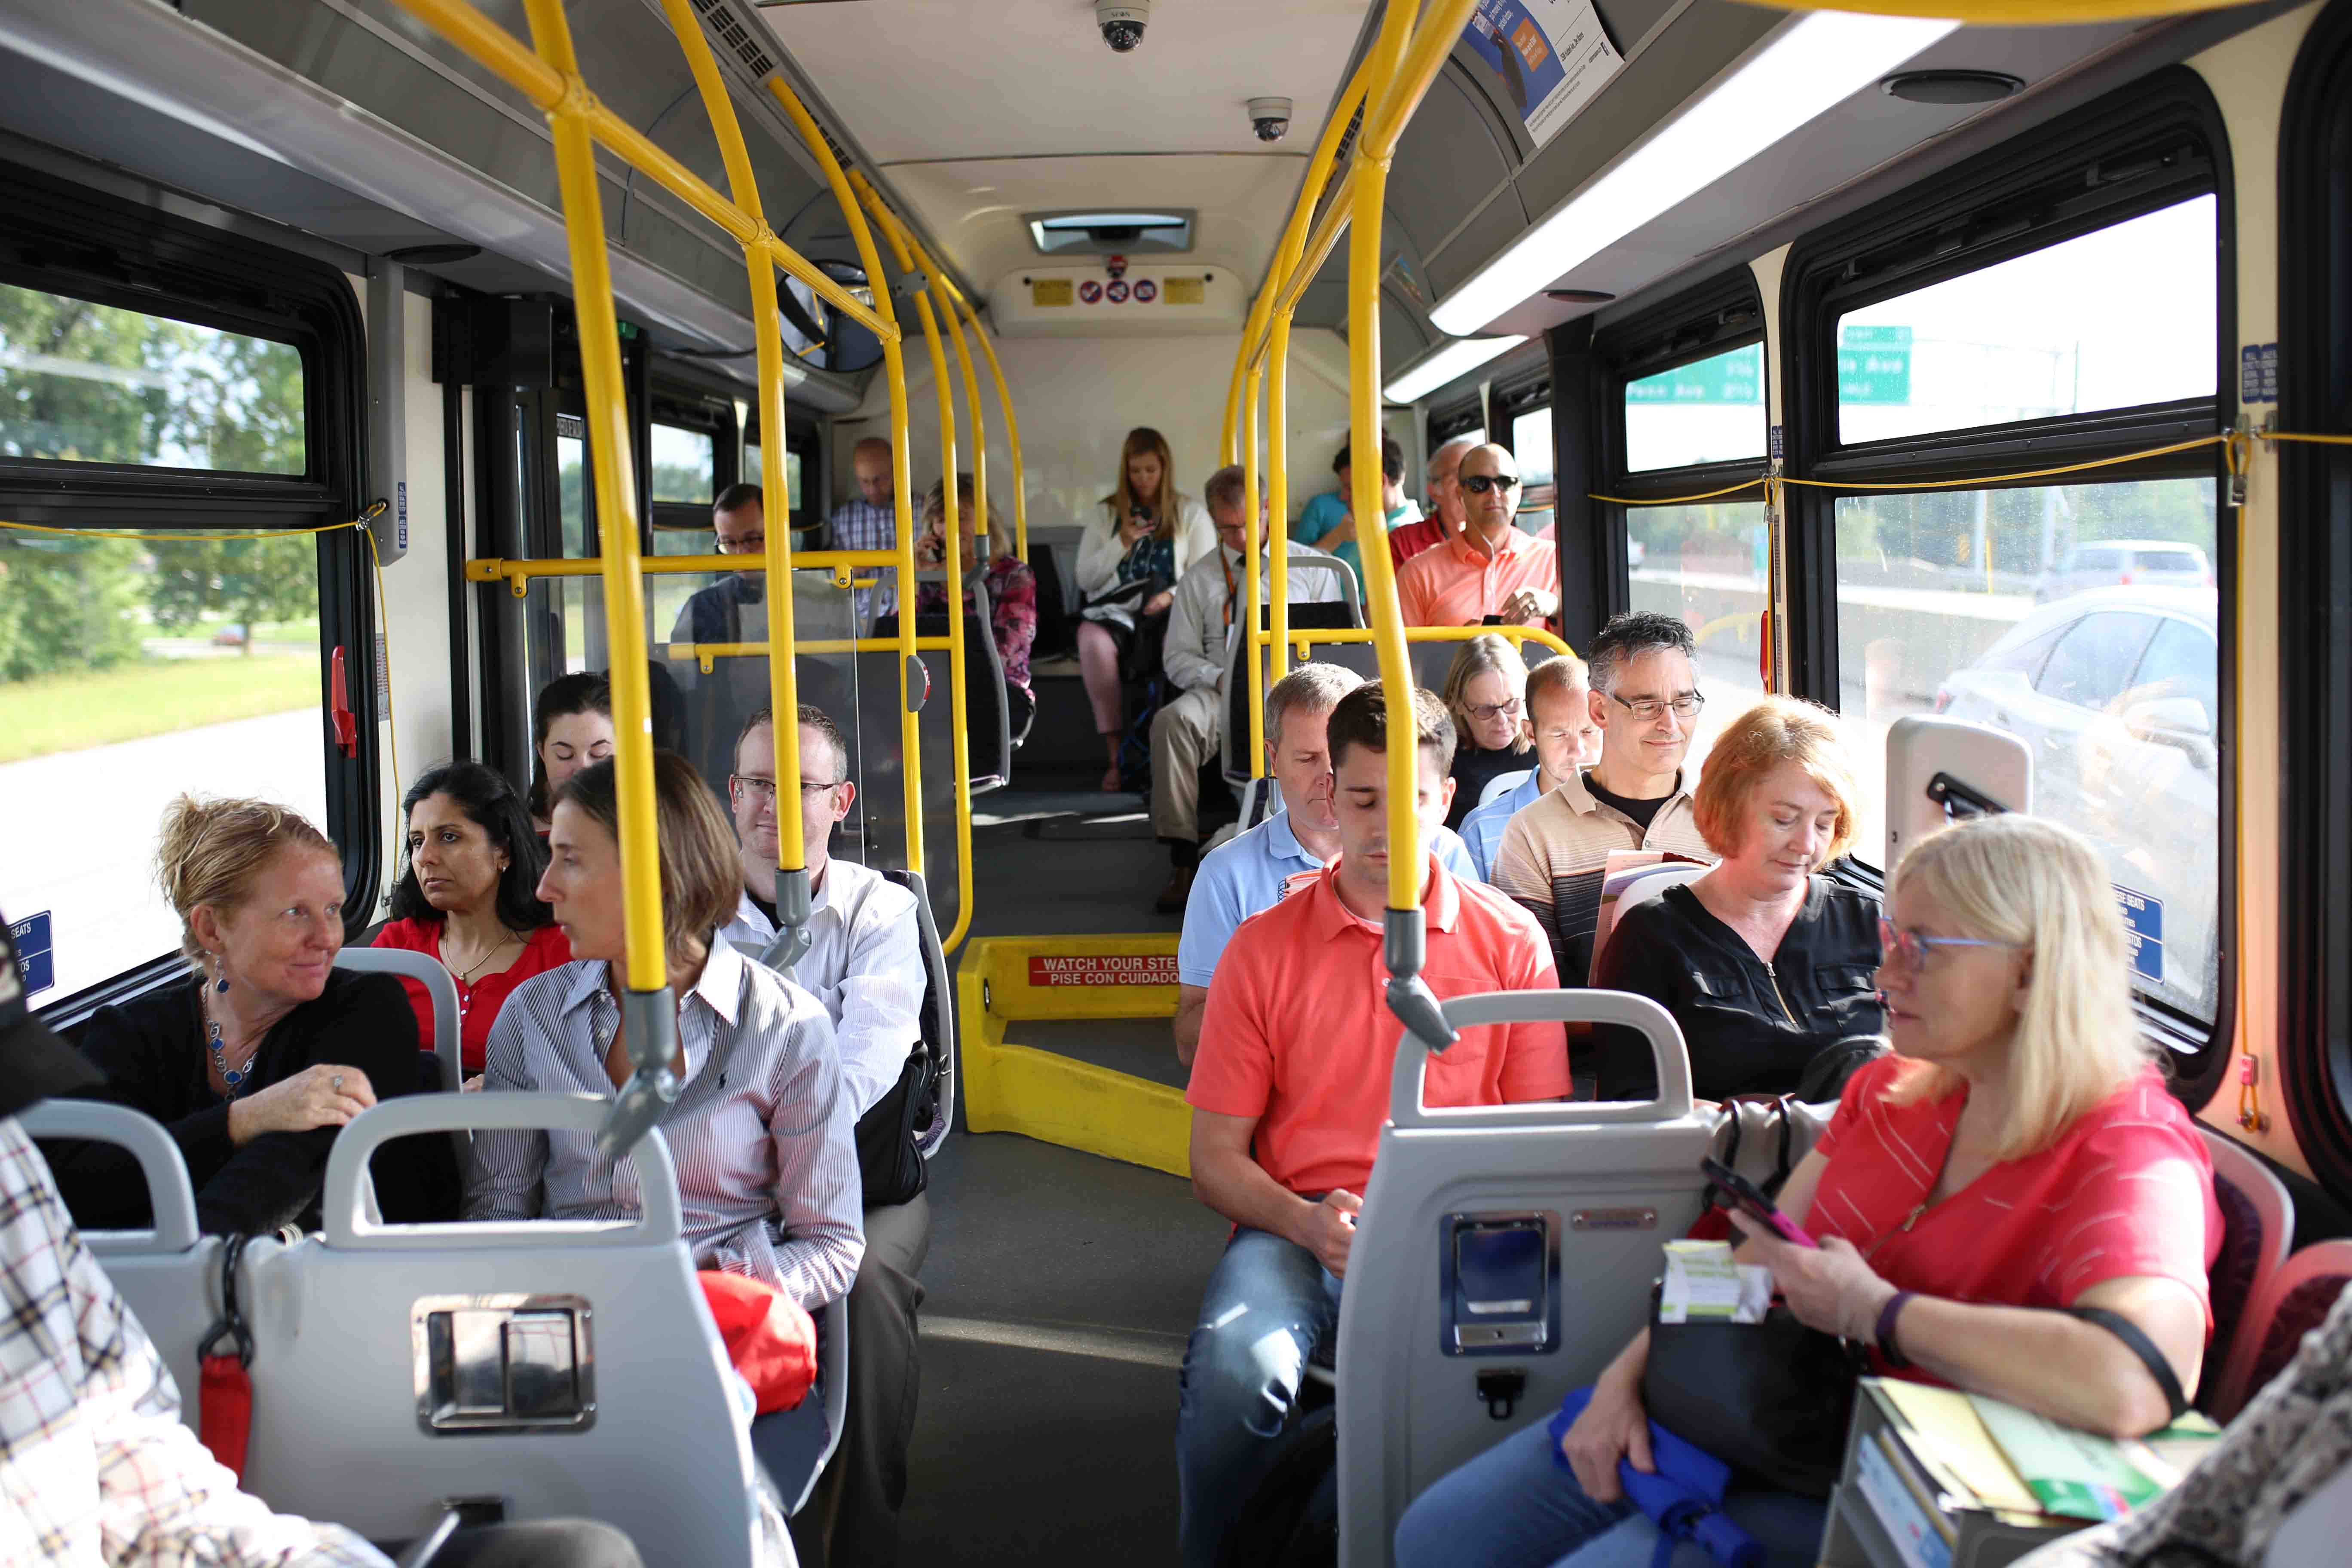 Inside look at a DART bus full of riders.